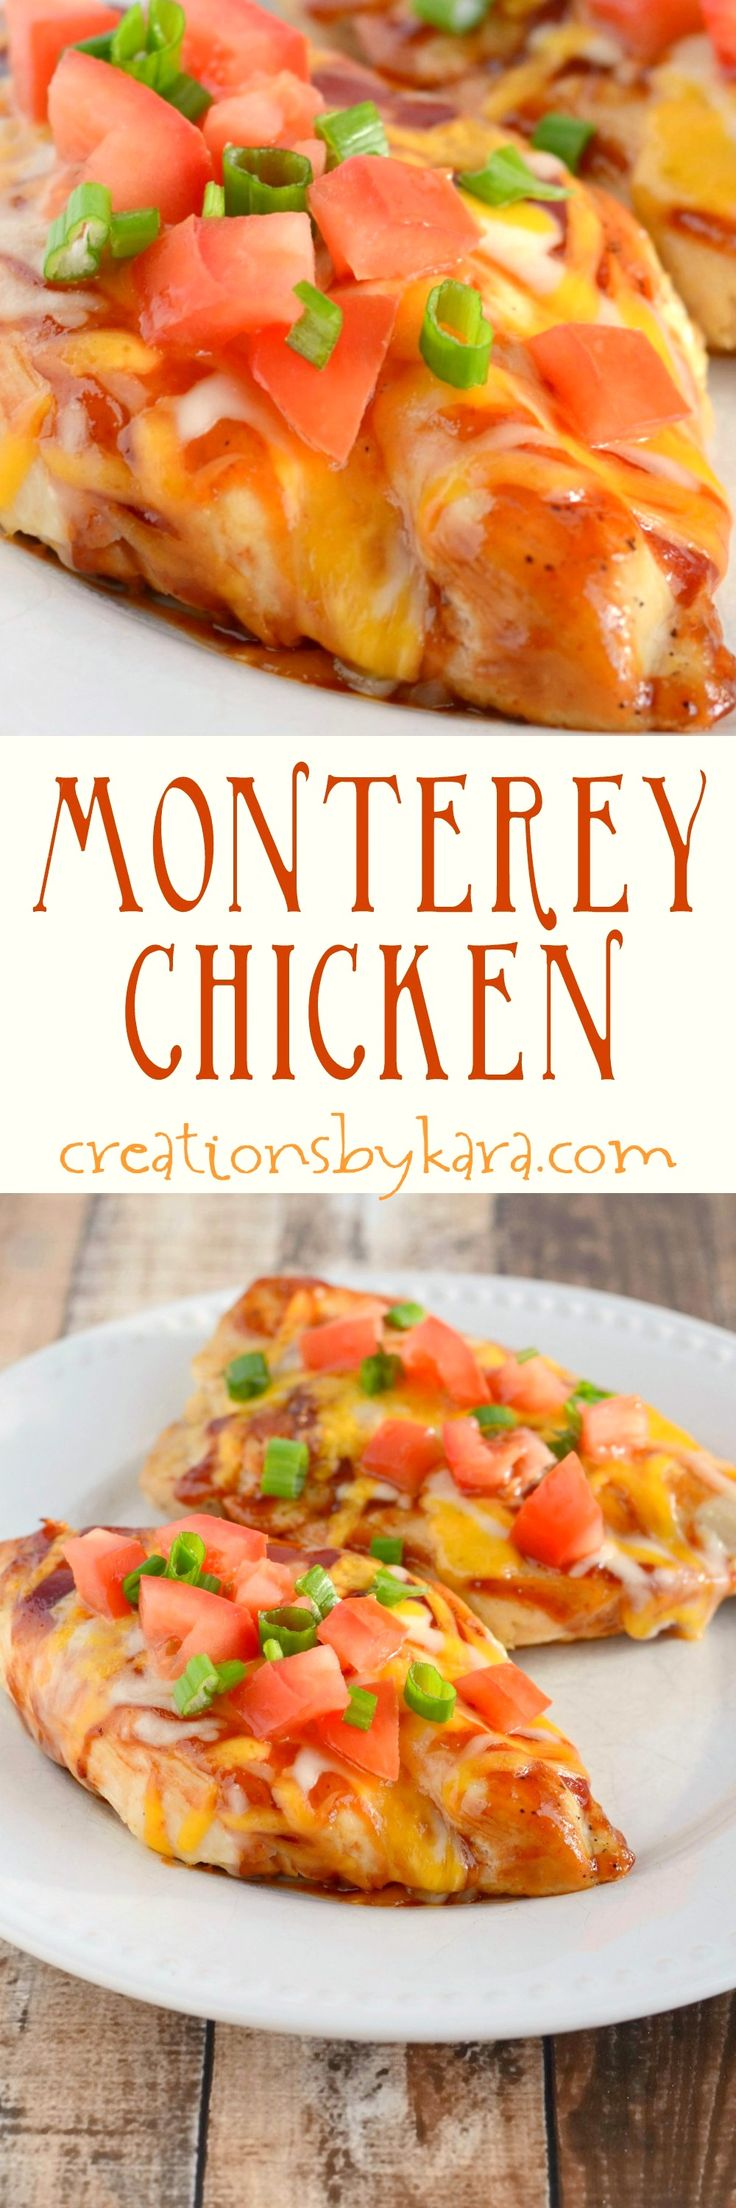 Loaded with bacon, cheese, and BBQ sauce, this Monterey Chicken always gets rave reviews. One of my favorite restaurant copycat recipes!